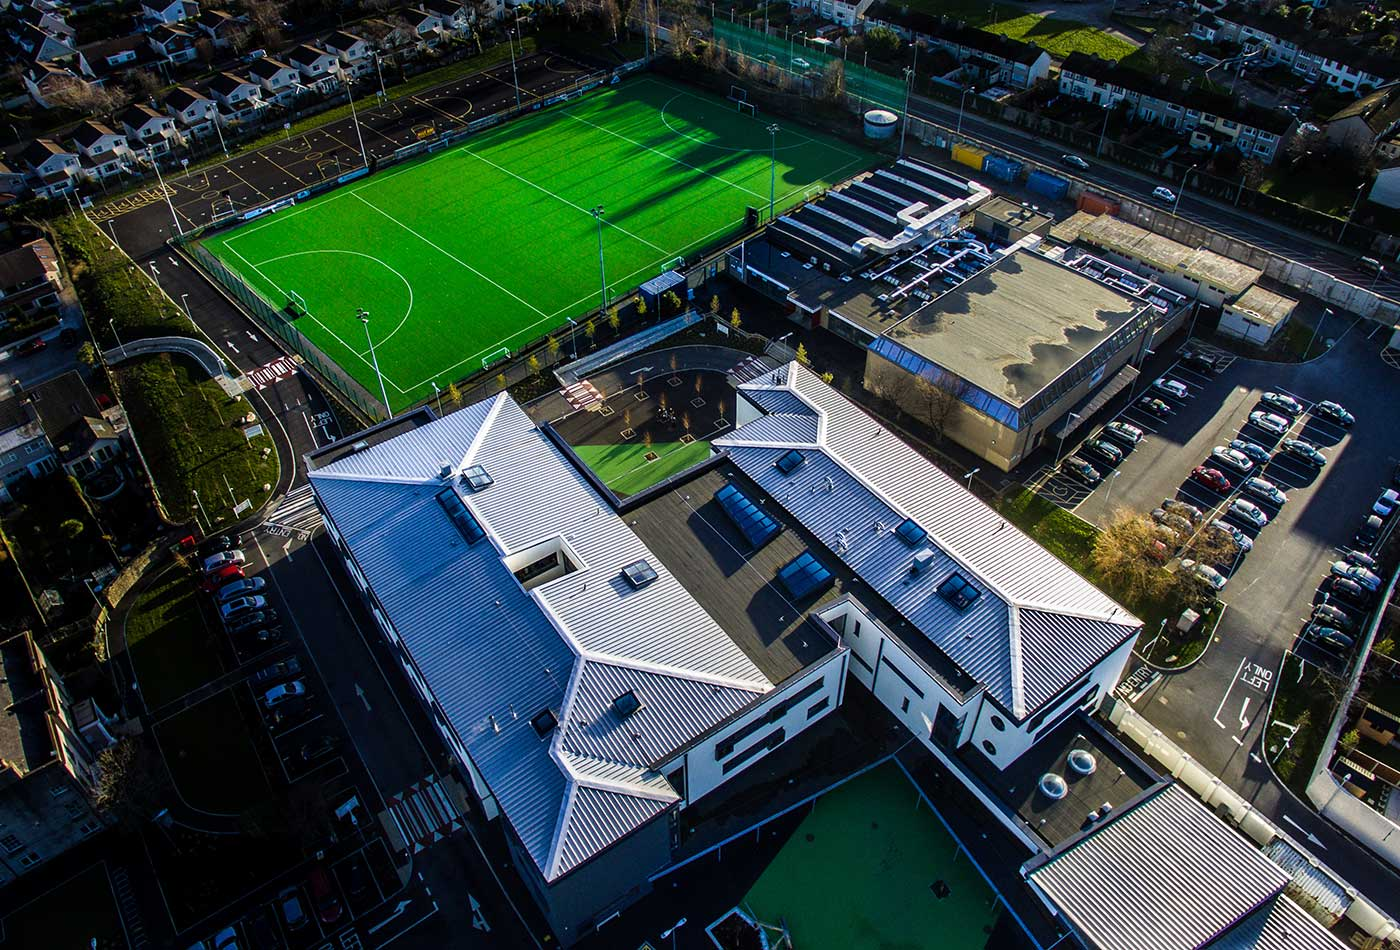 New buildings, hockey pitch and the sports centre.